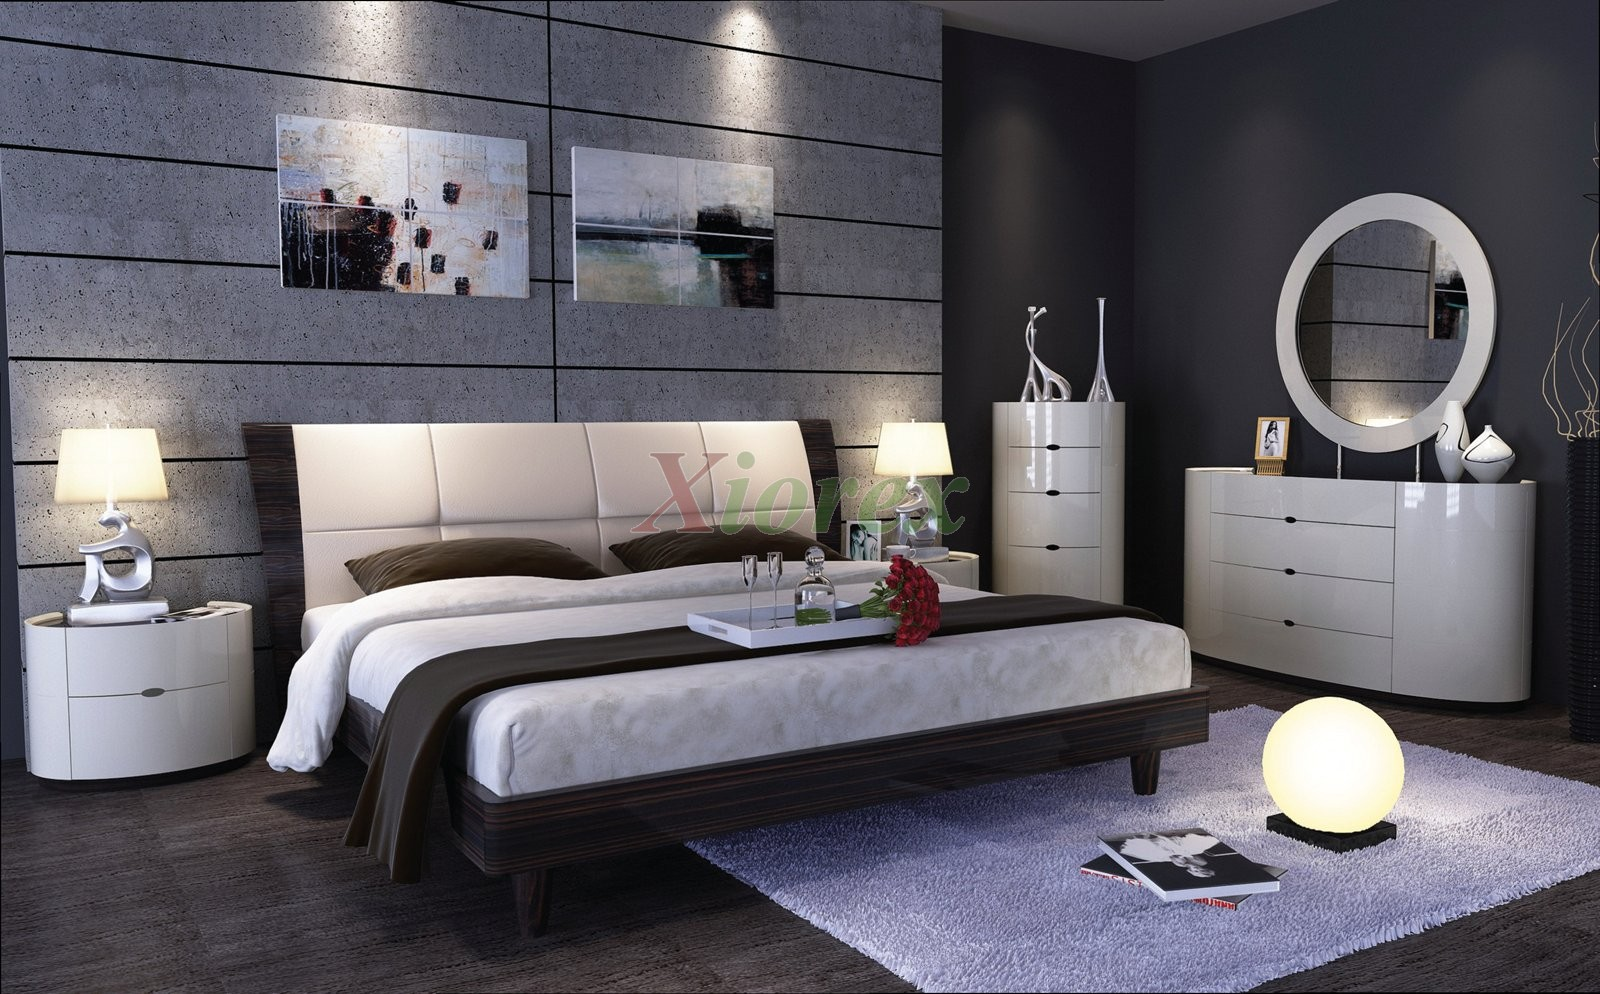 Hydra modern bed sets toronto ottawa calgary vancouver bc - Ultra contemporary bedroom furniture ...